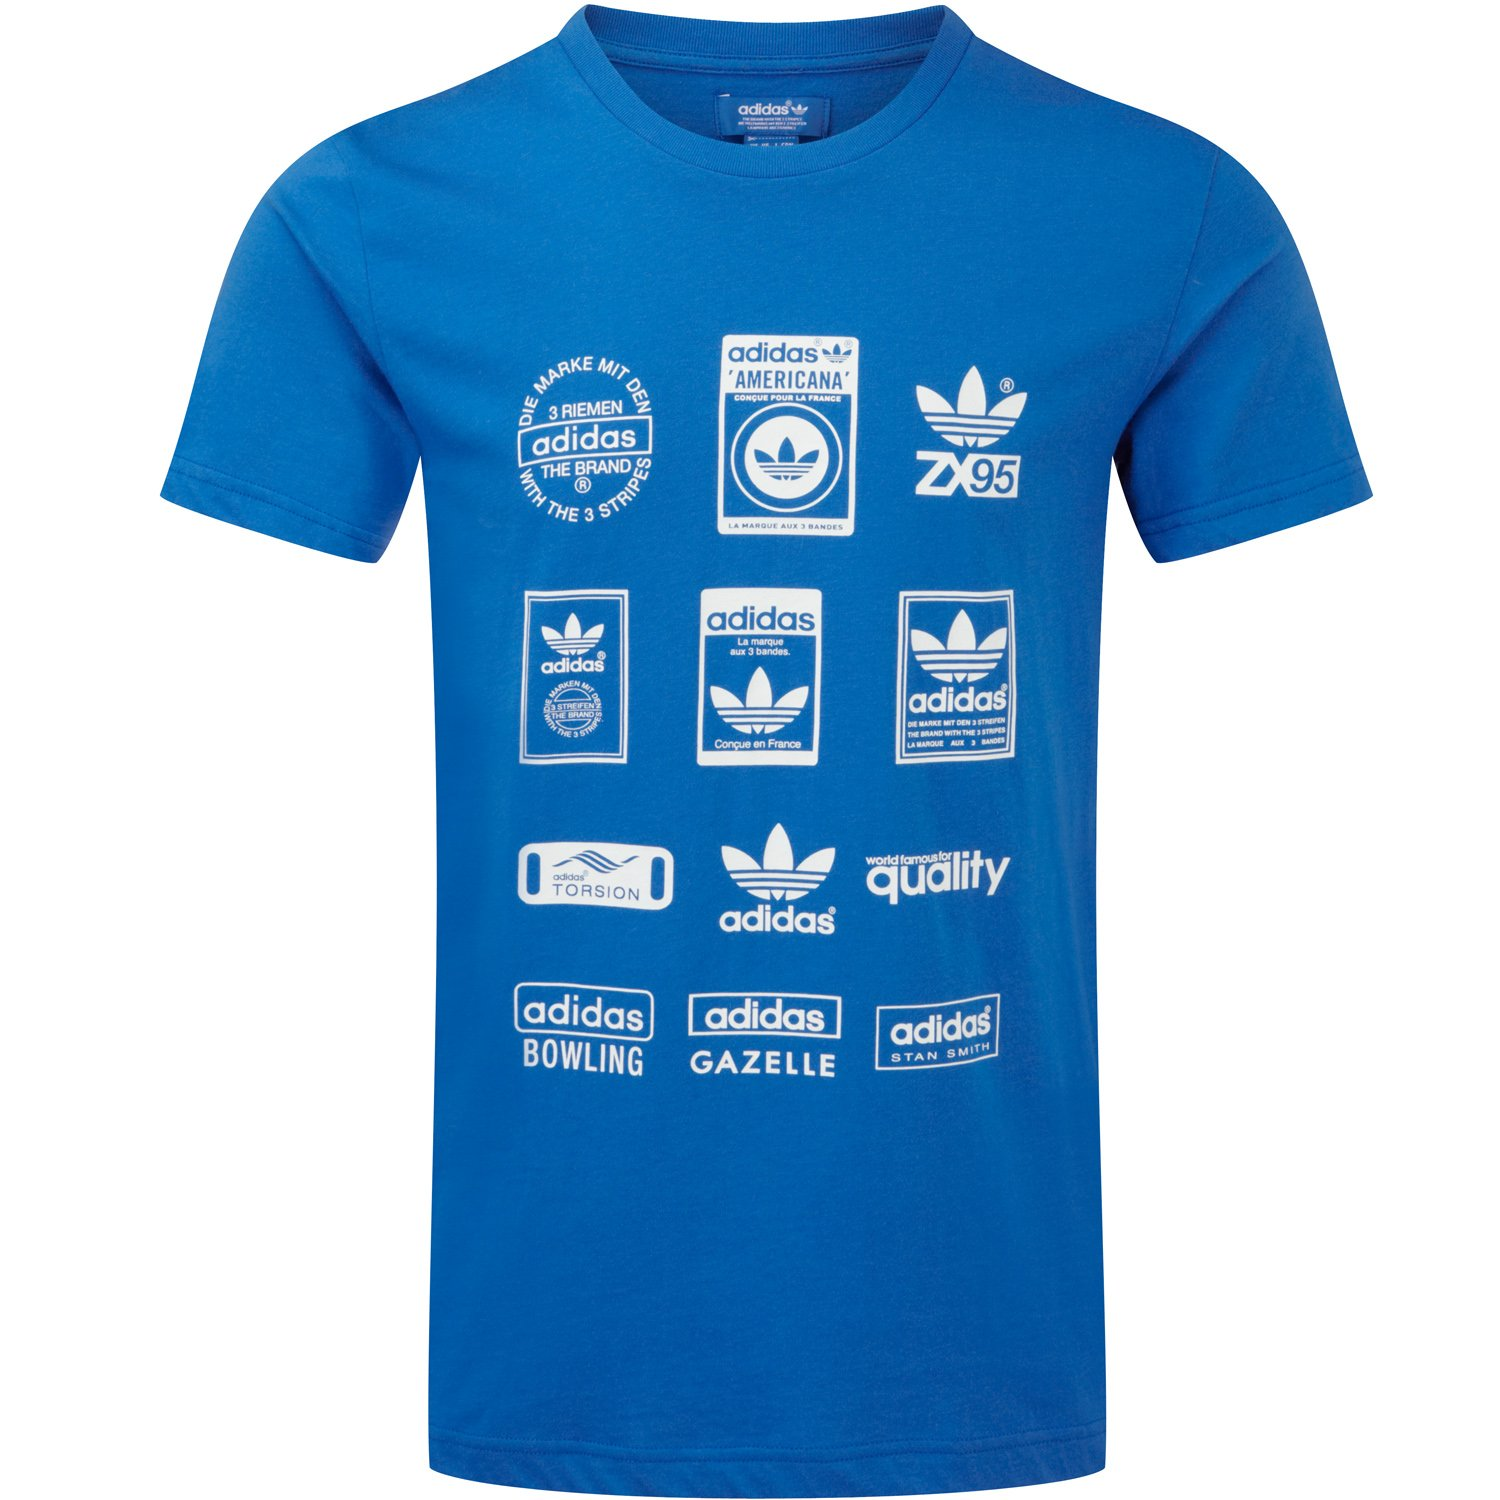 adidas Originals Mens Labels Short Sleeve T-Shirt - Blue - Small